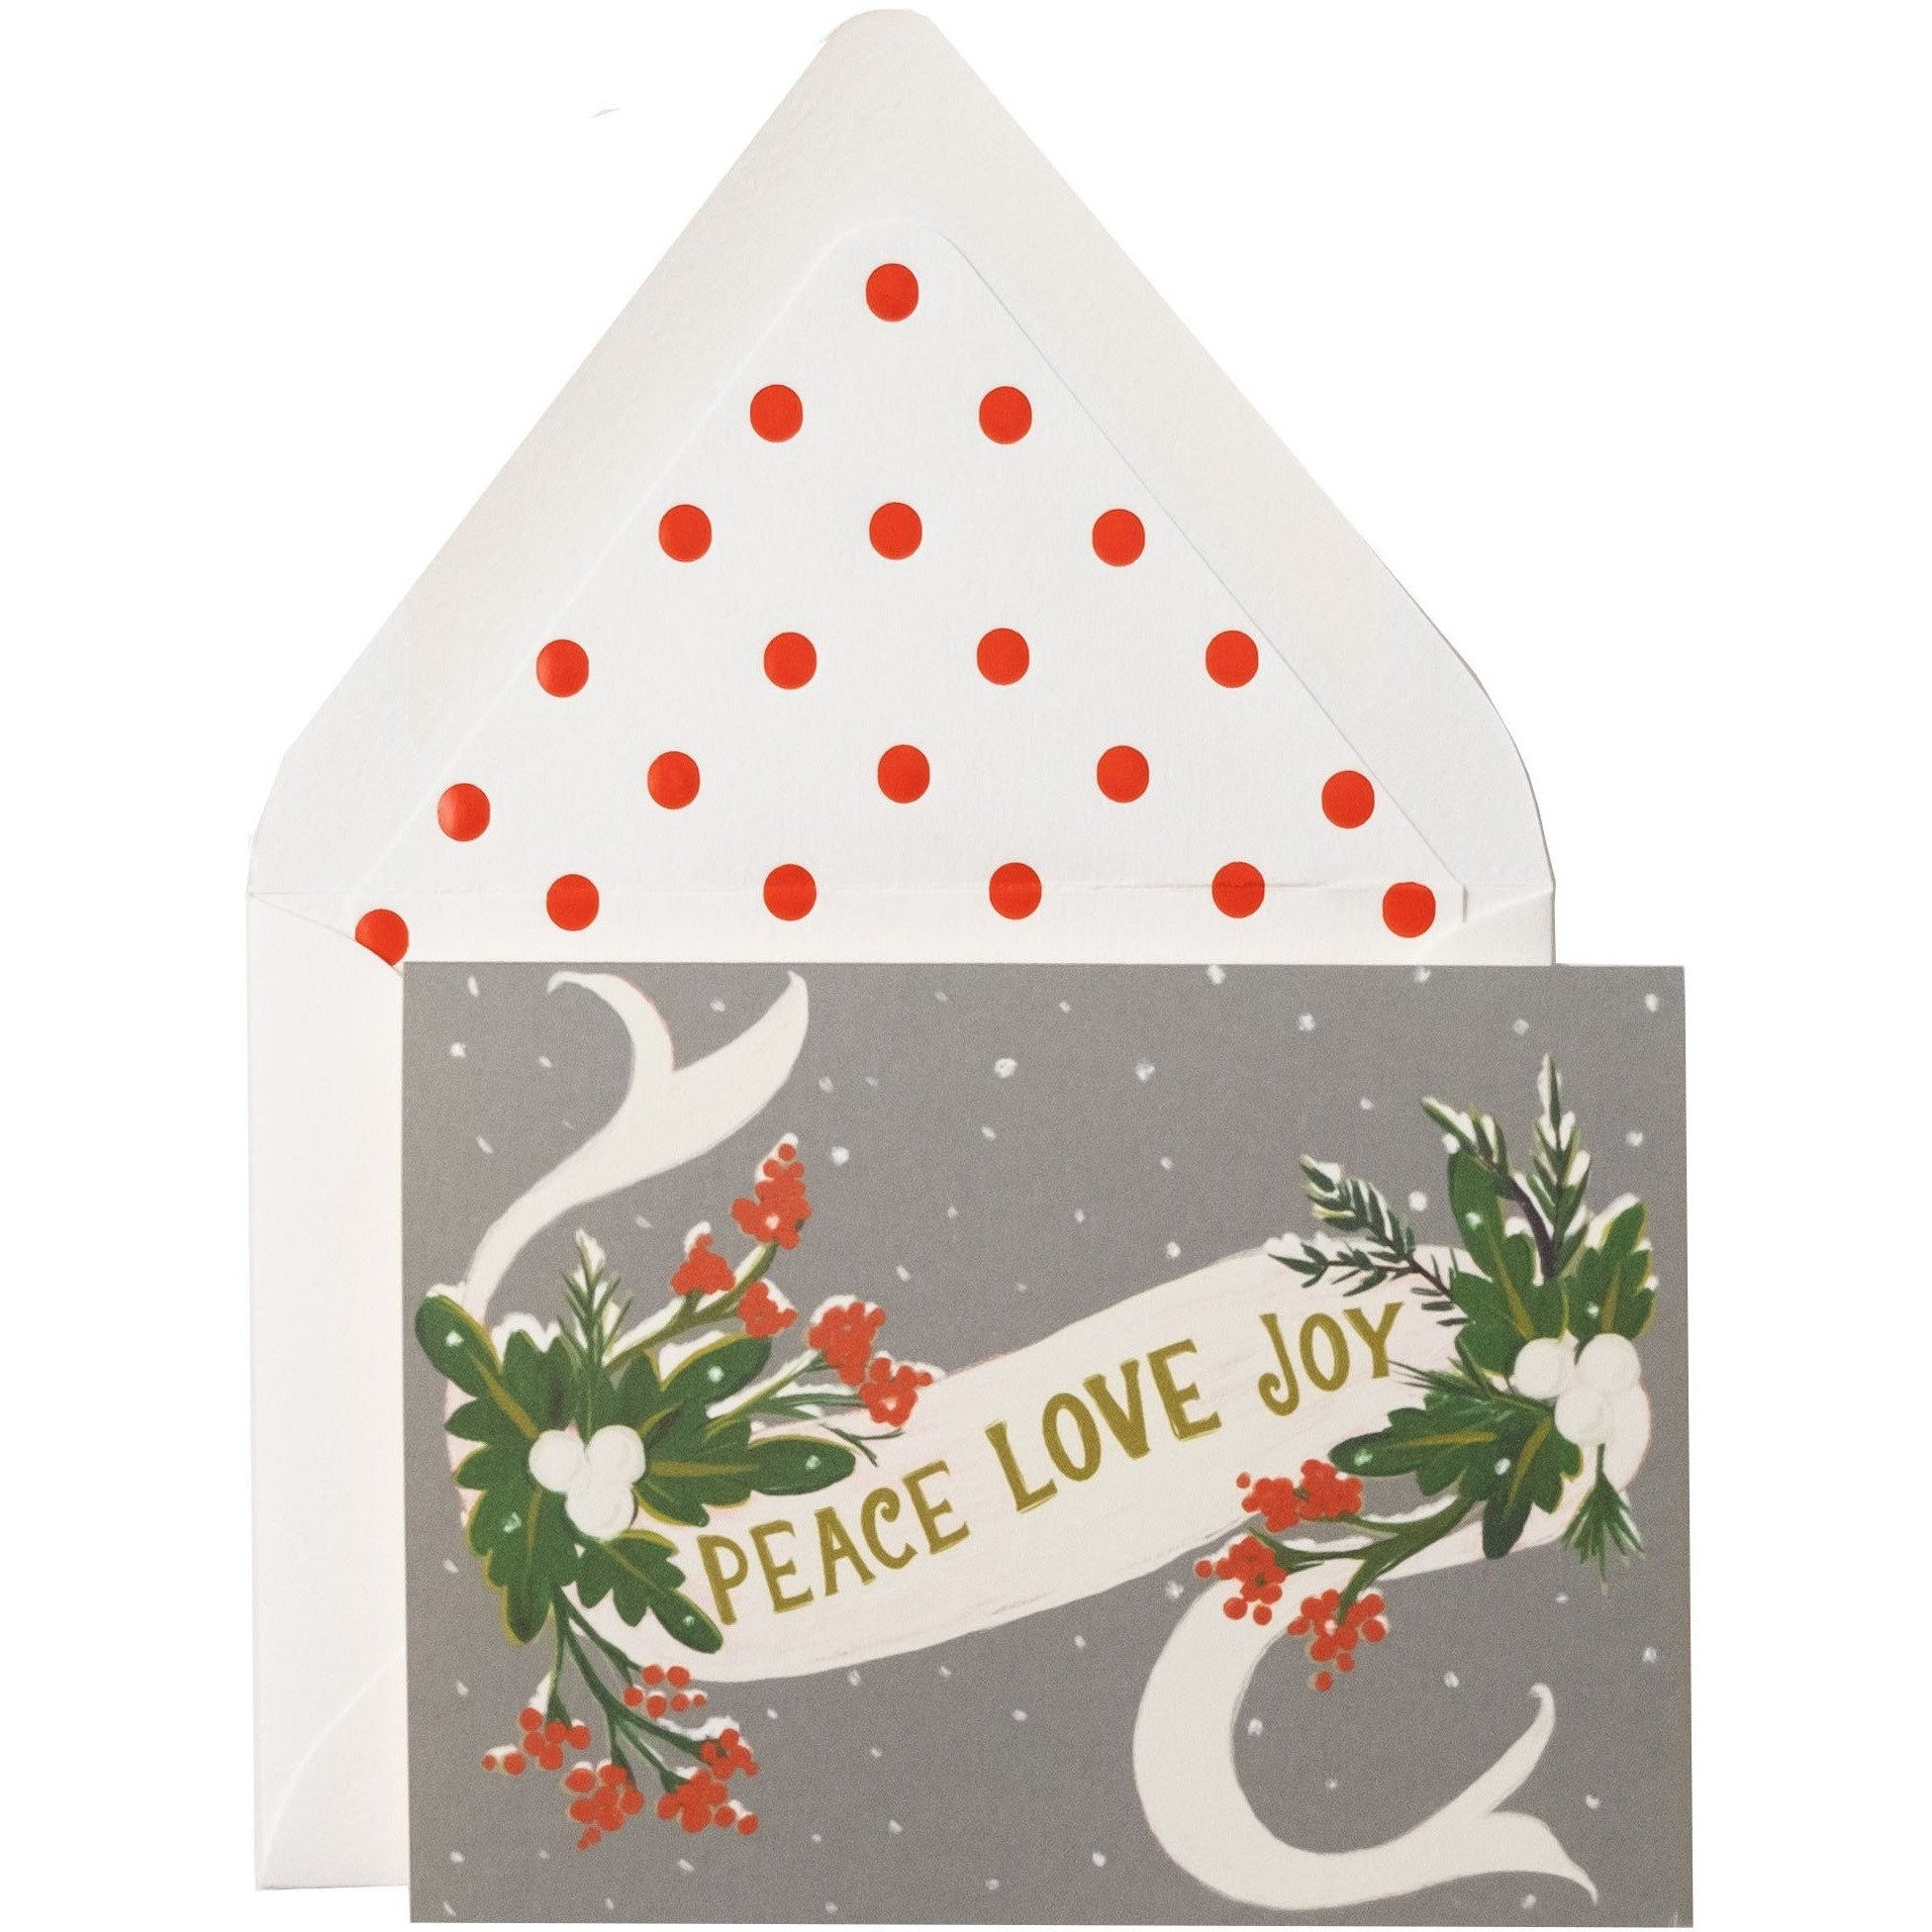 """Peace, Love, Joy"" Red and Green First Snow Holiday Season Card - The First Snow"